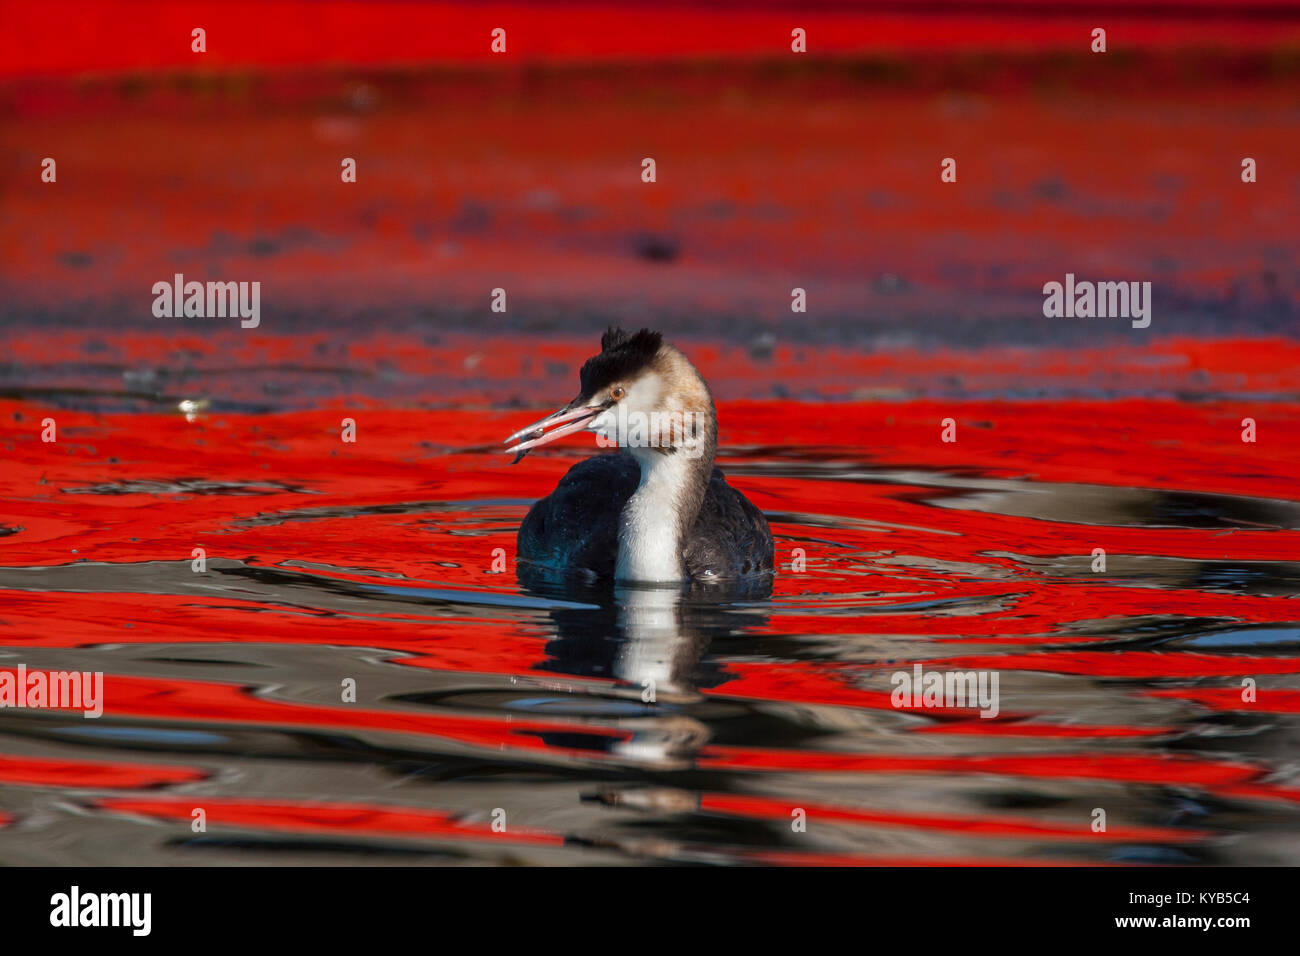 Great Crested Grebes (Podiceps cristatus) transitory plumage from winter to summer plumage - Stock Image